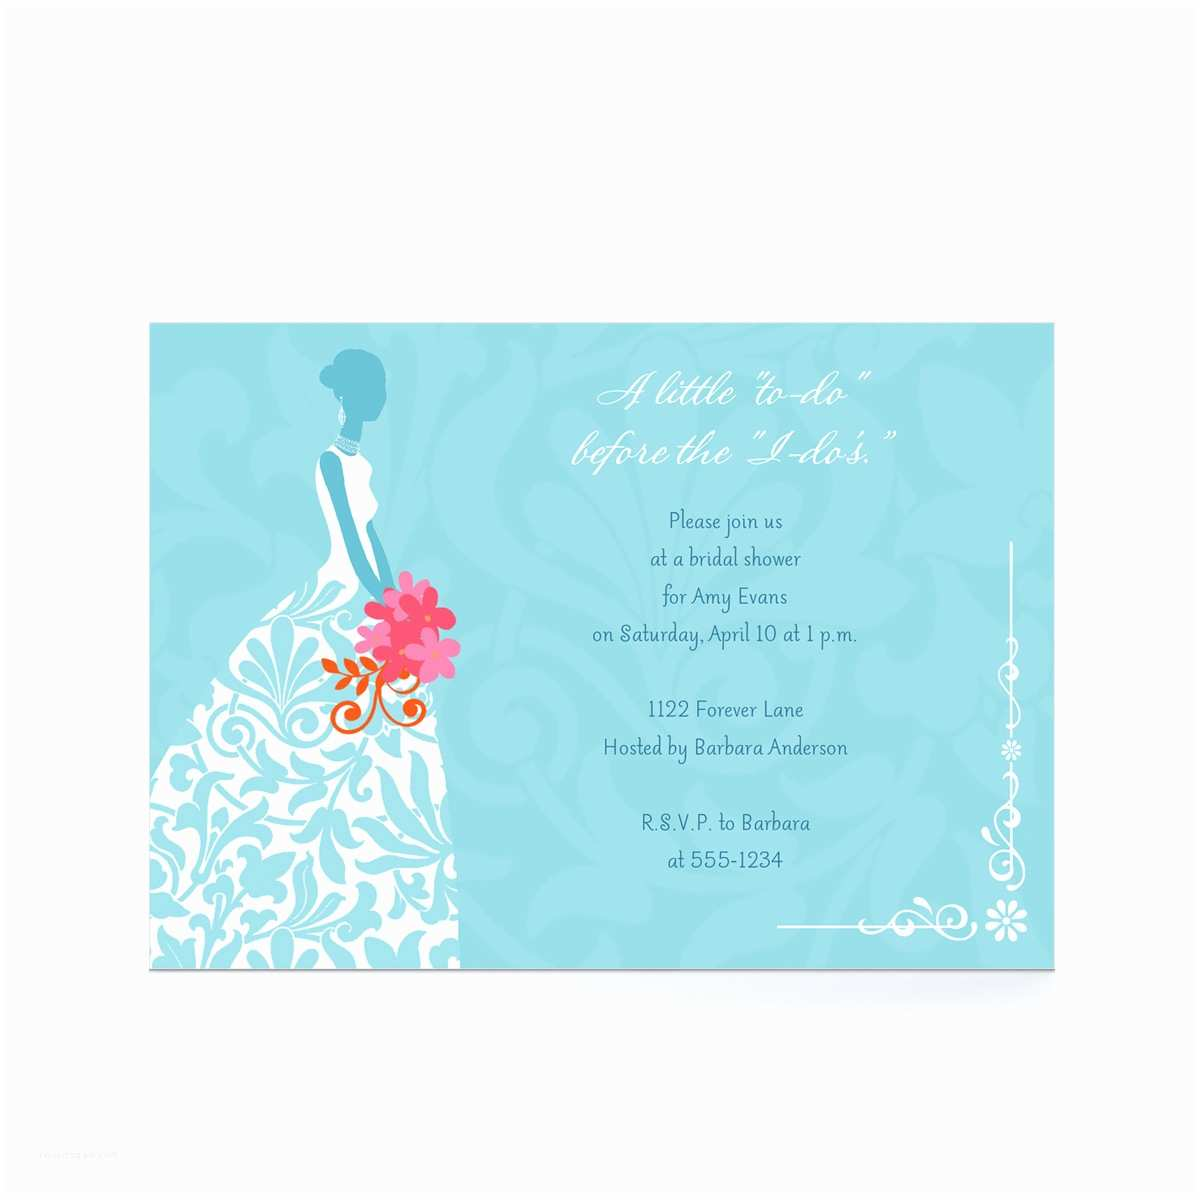 e wedding invitation electronic wedding invitations gangcraft